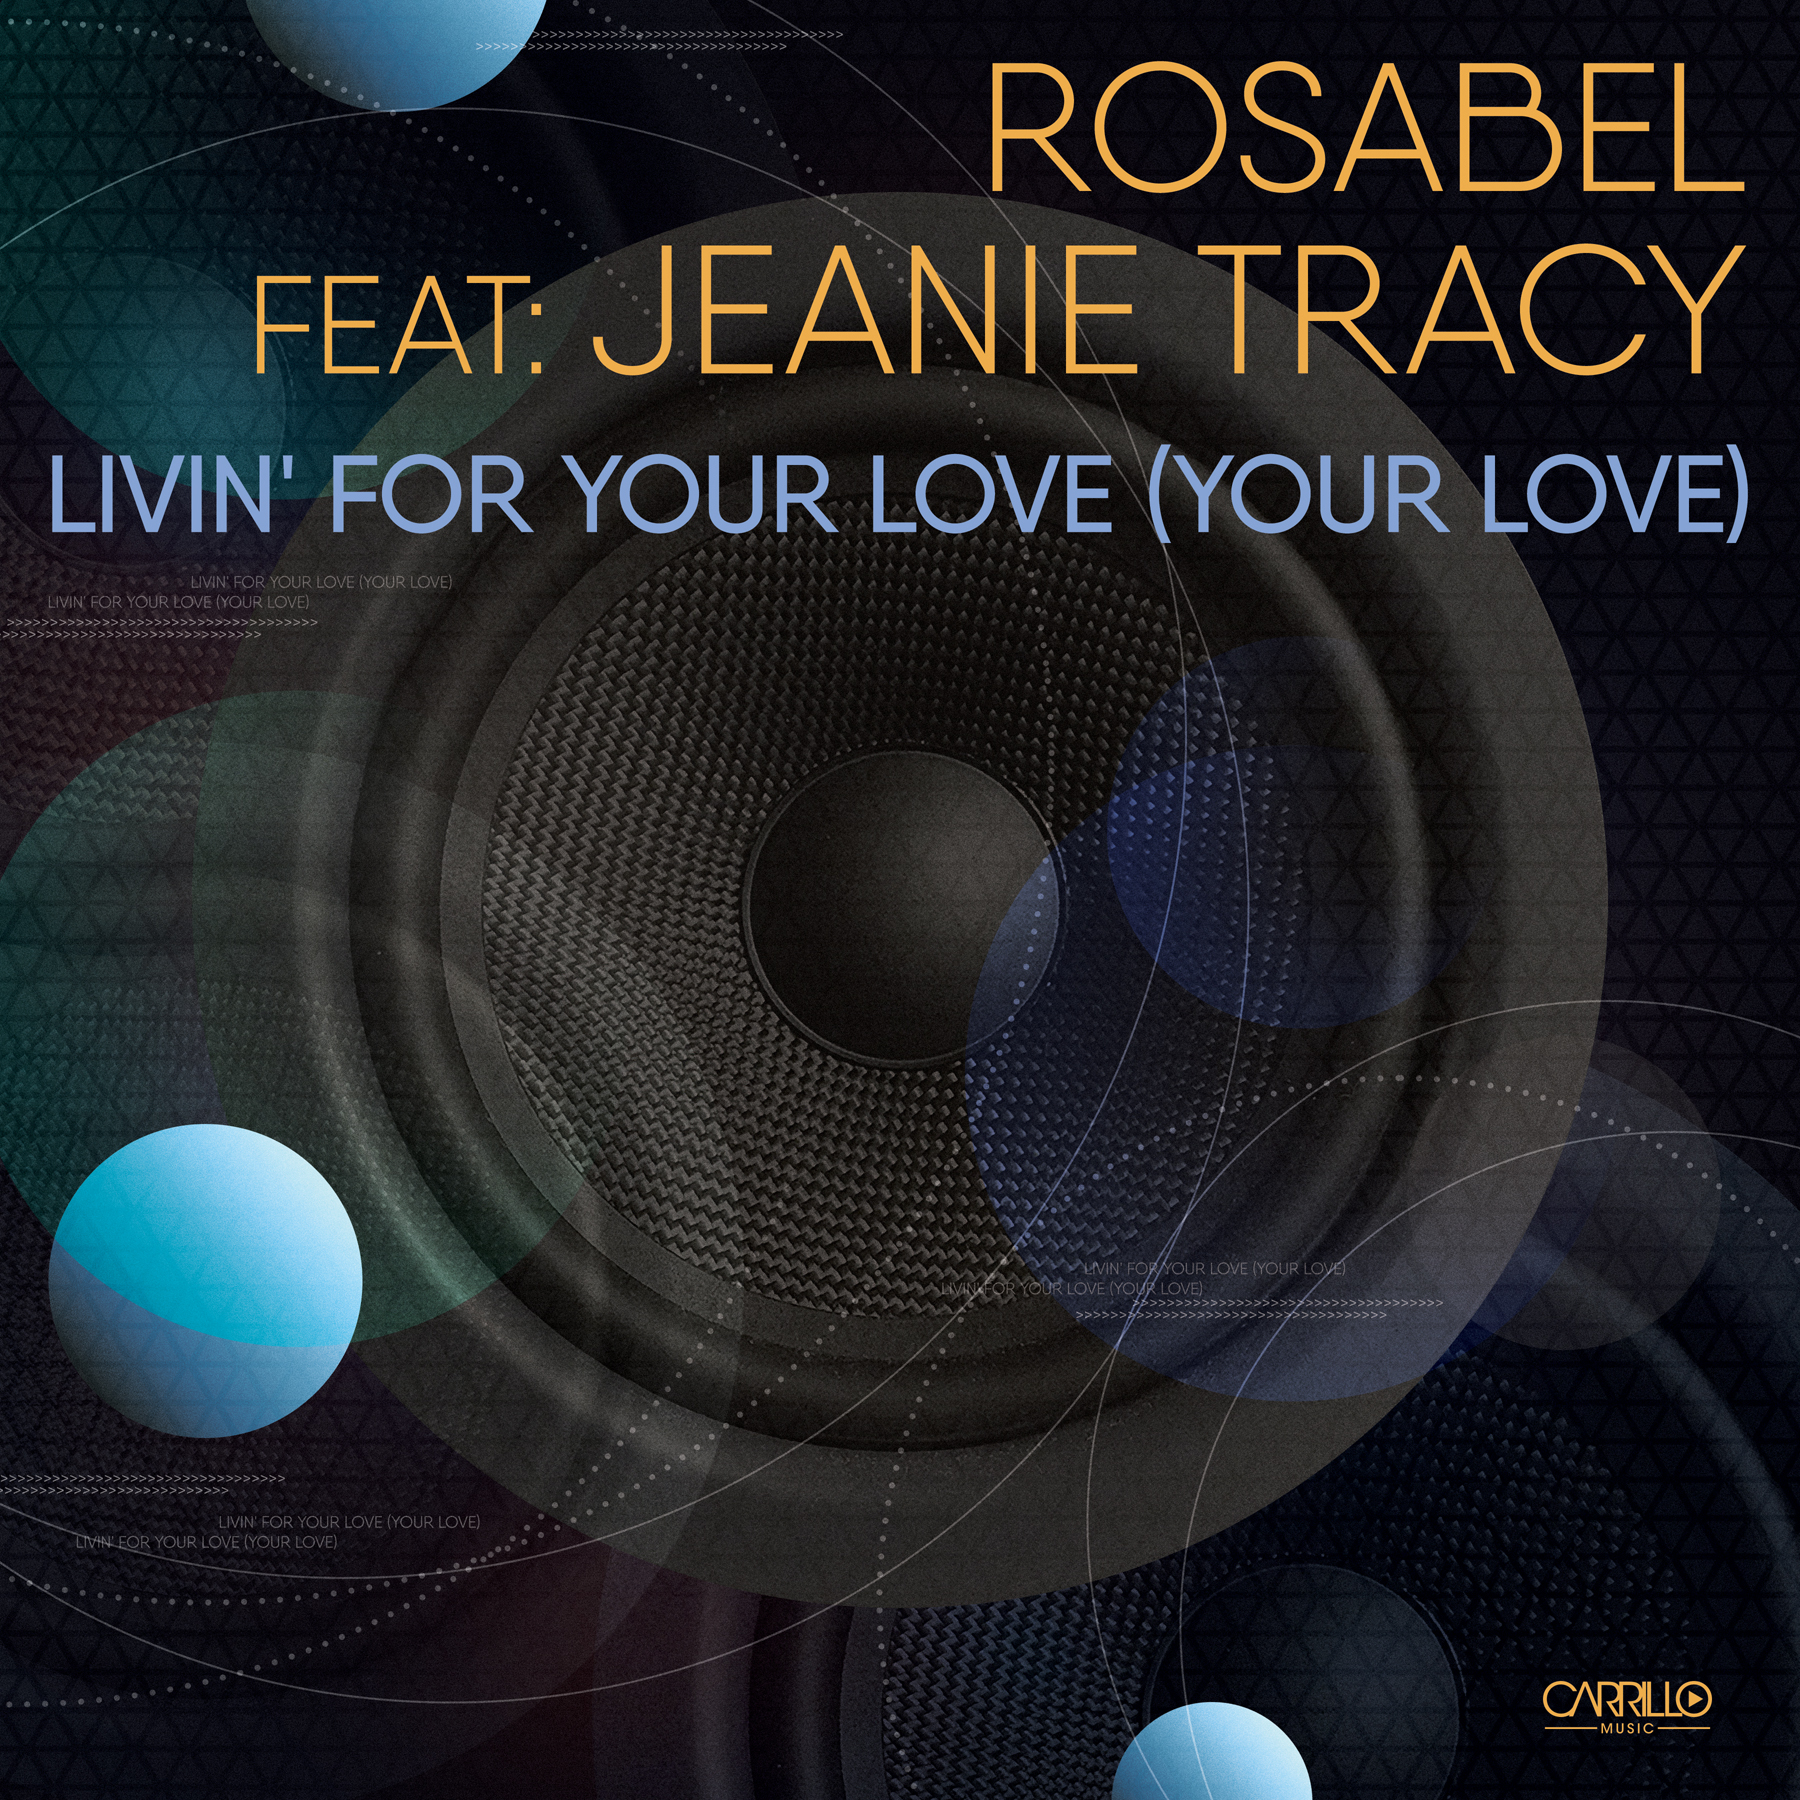 Rosabel Featuring Jeanie Tracy-livin for your love